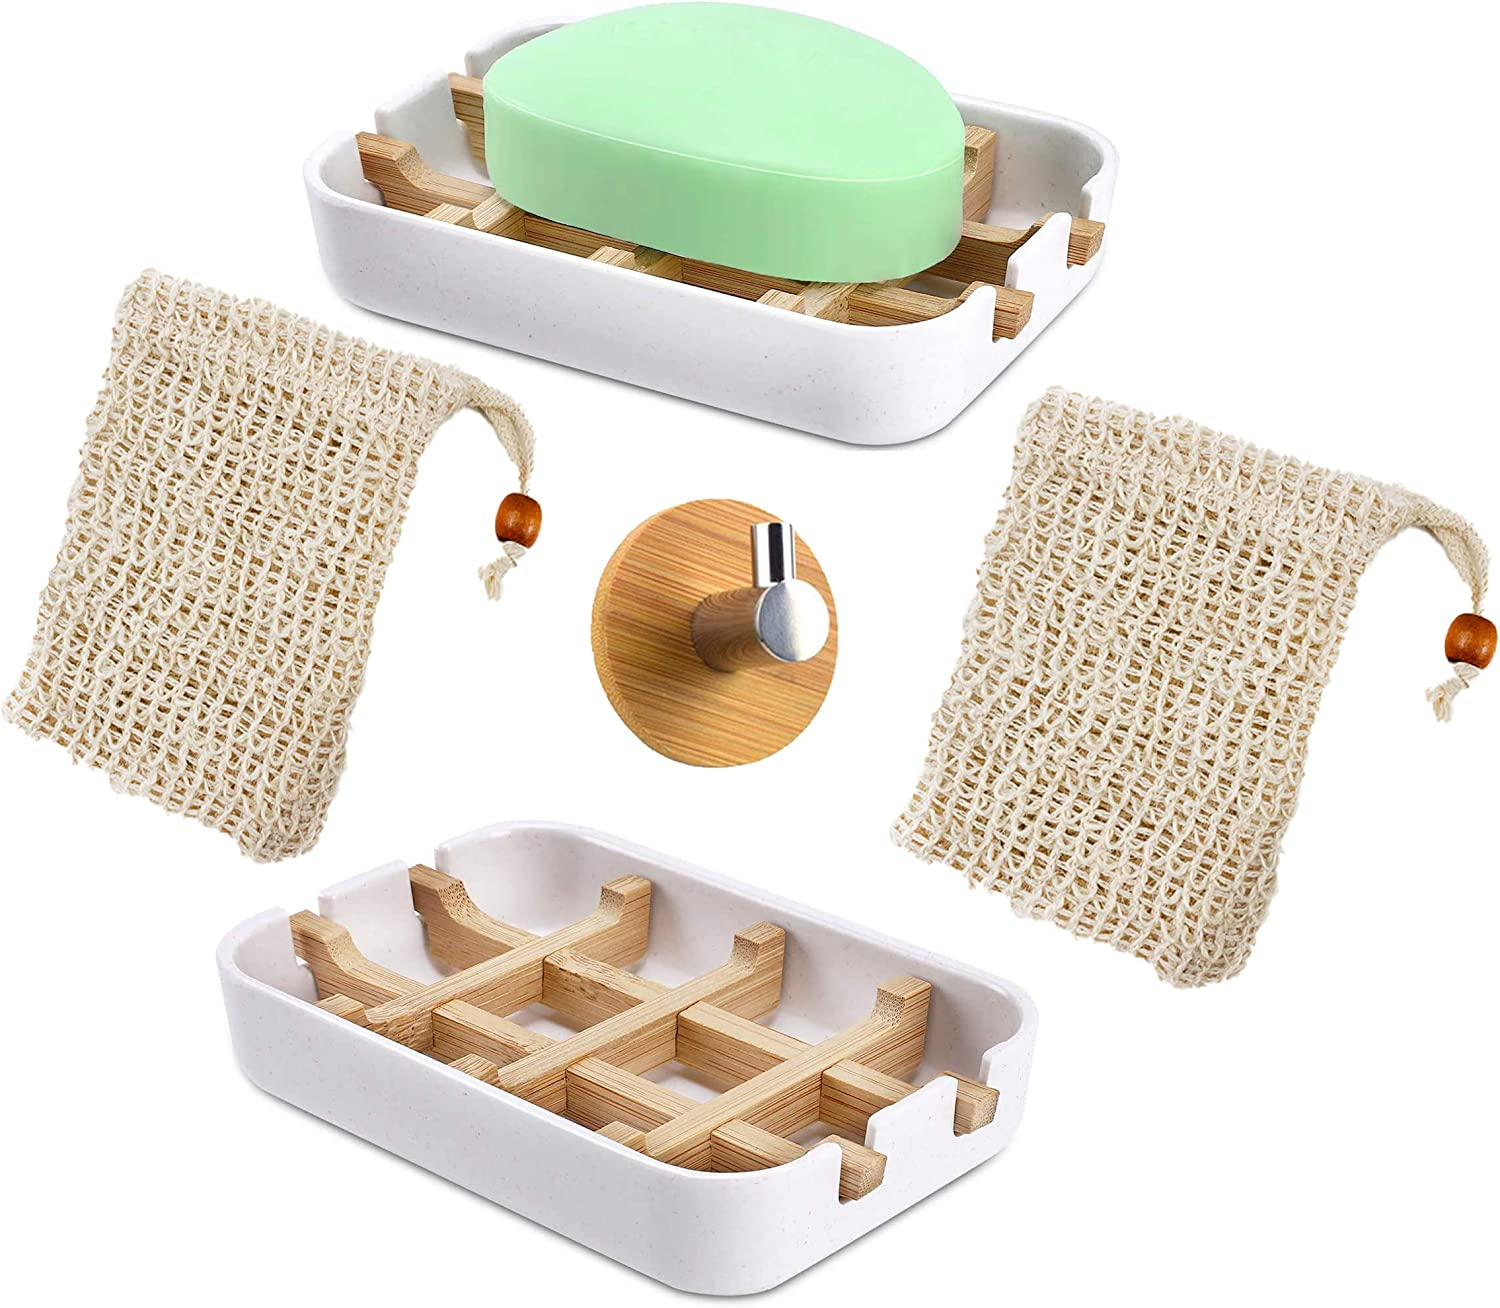 Sustainable Soap Dish Bag Set – Dishes Self-Draining Sale shopping price 2